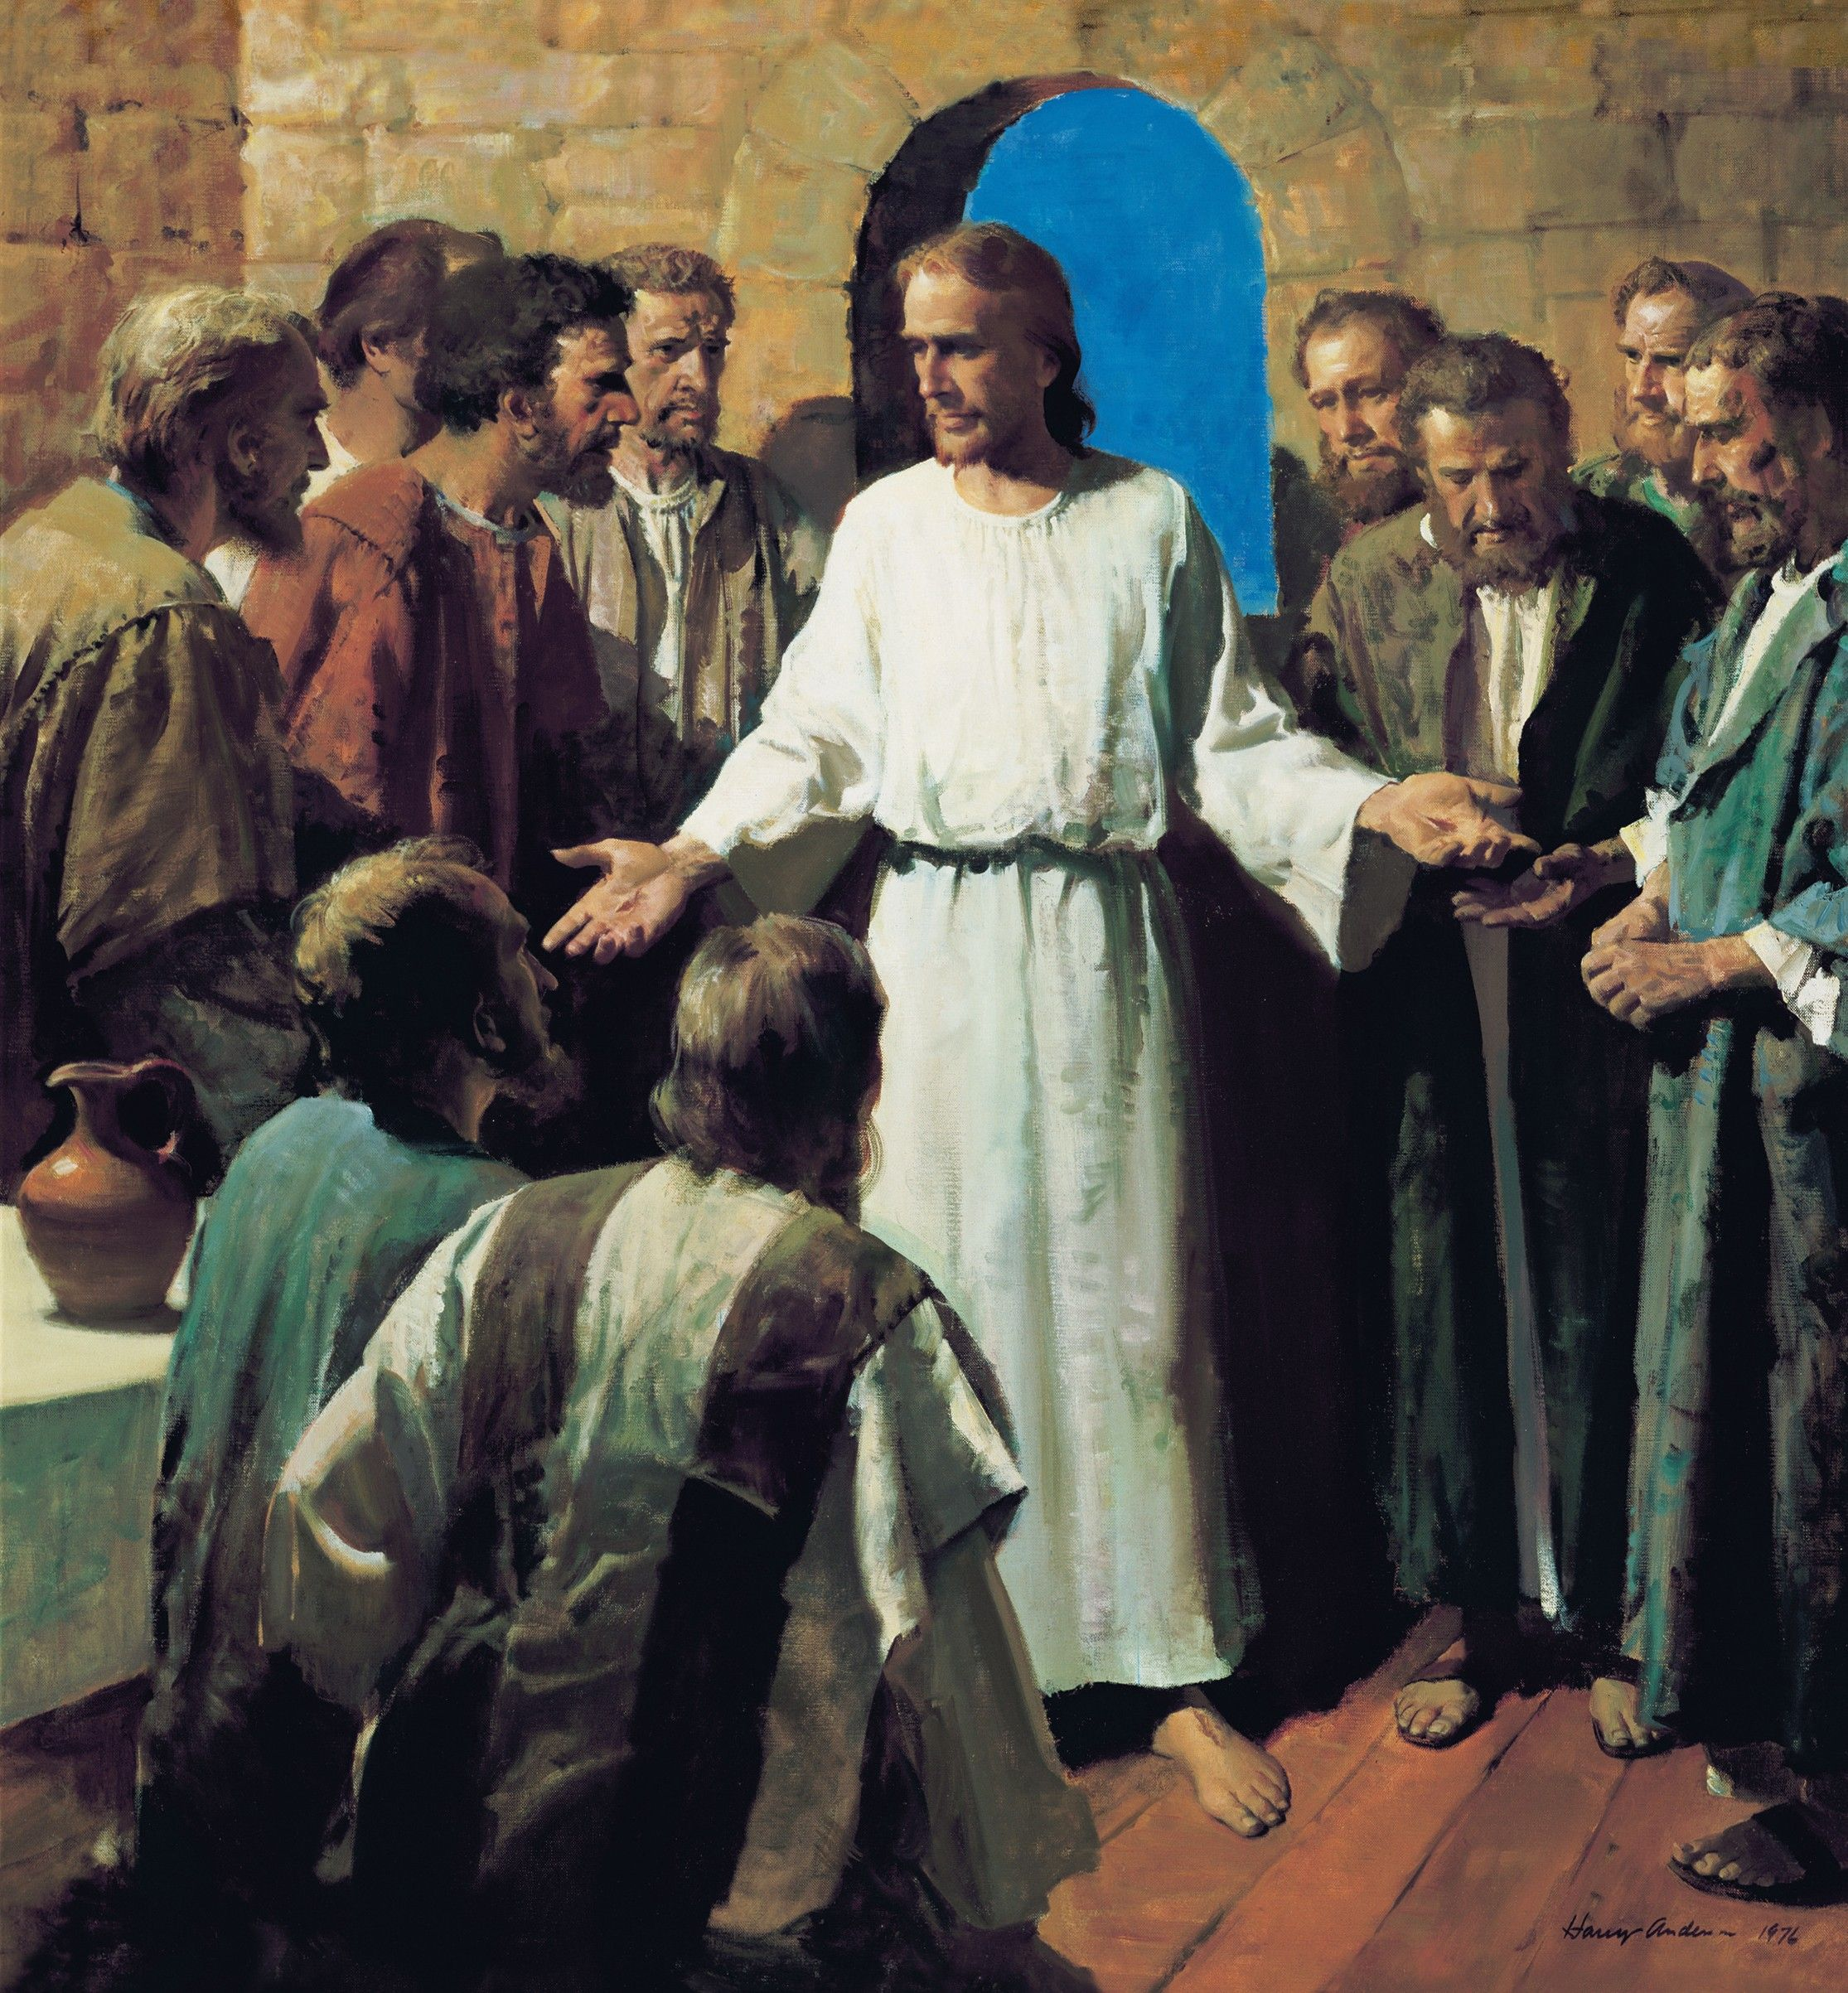 Jesus Shows His Wounds (Behold My Hands and Feet), by Harry Anderson (62503); GAK 234; GAB 60; Primary manual 1-74; Primary manual 2-64; John 3:16; 8:12; 11:25; 14:6; 1 Corinthians 15:20–22